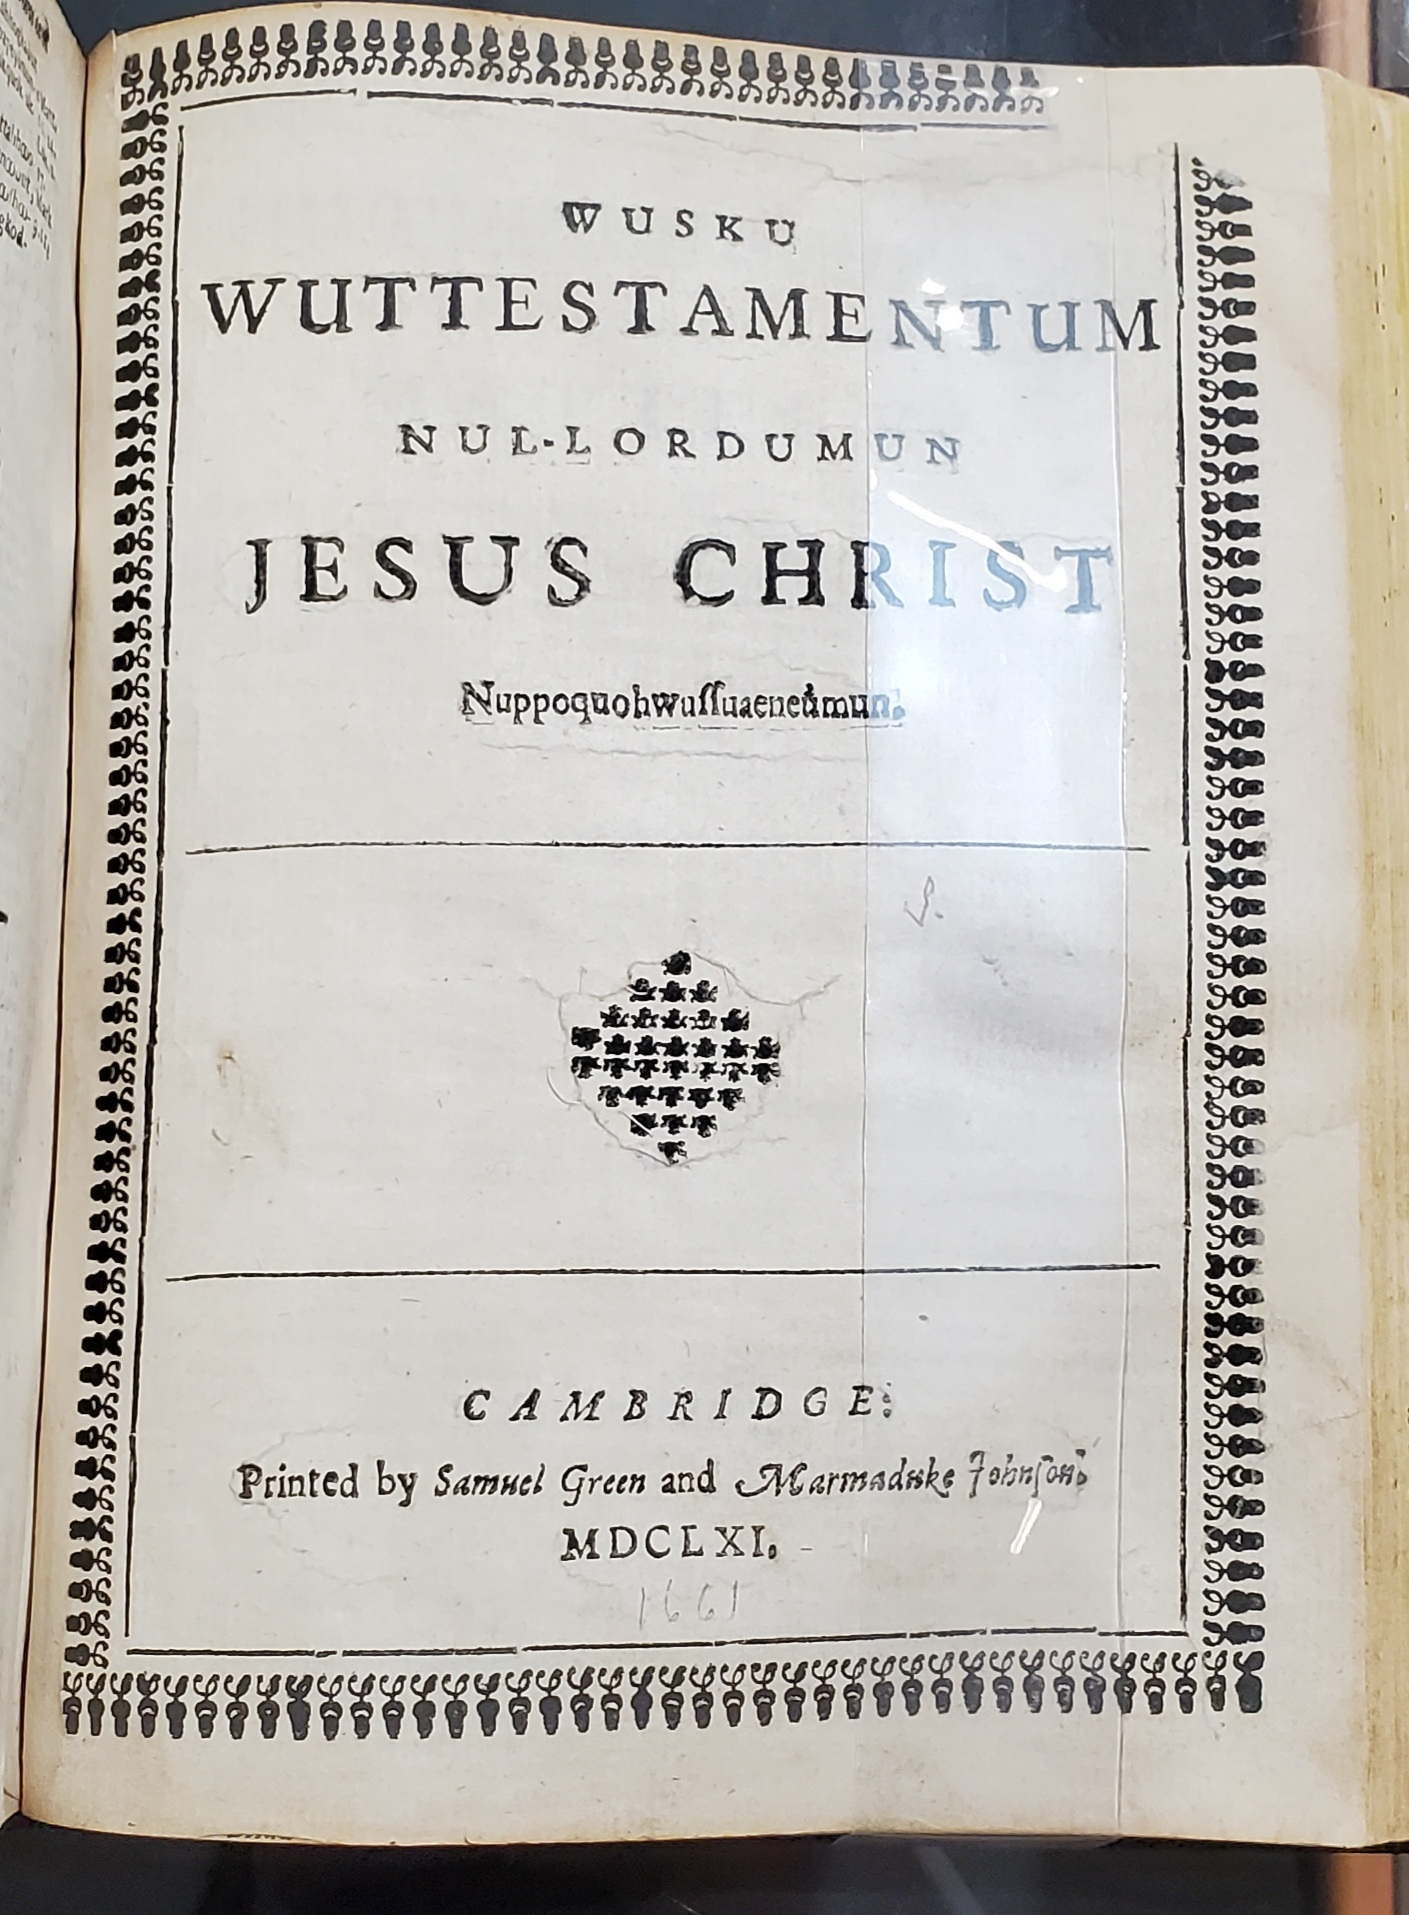 Title page of the New Testament in Eliot's Indian Bible. Text is in Algonquian.